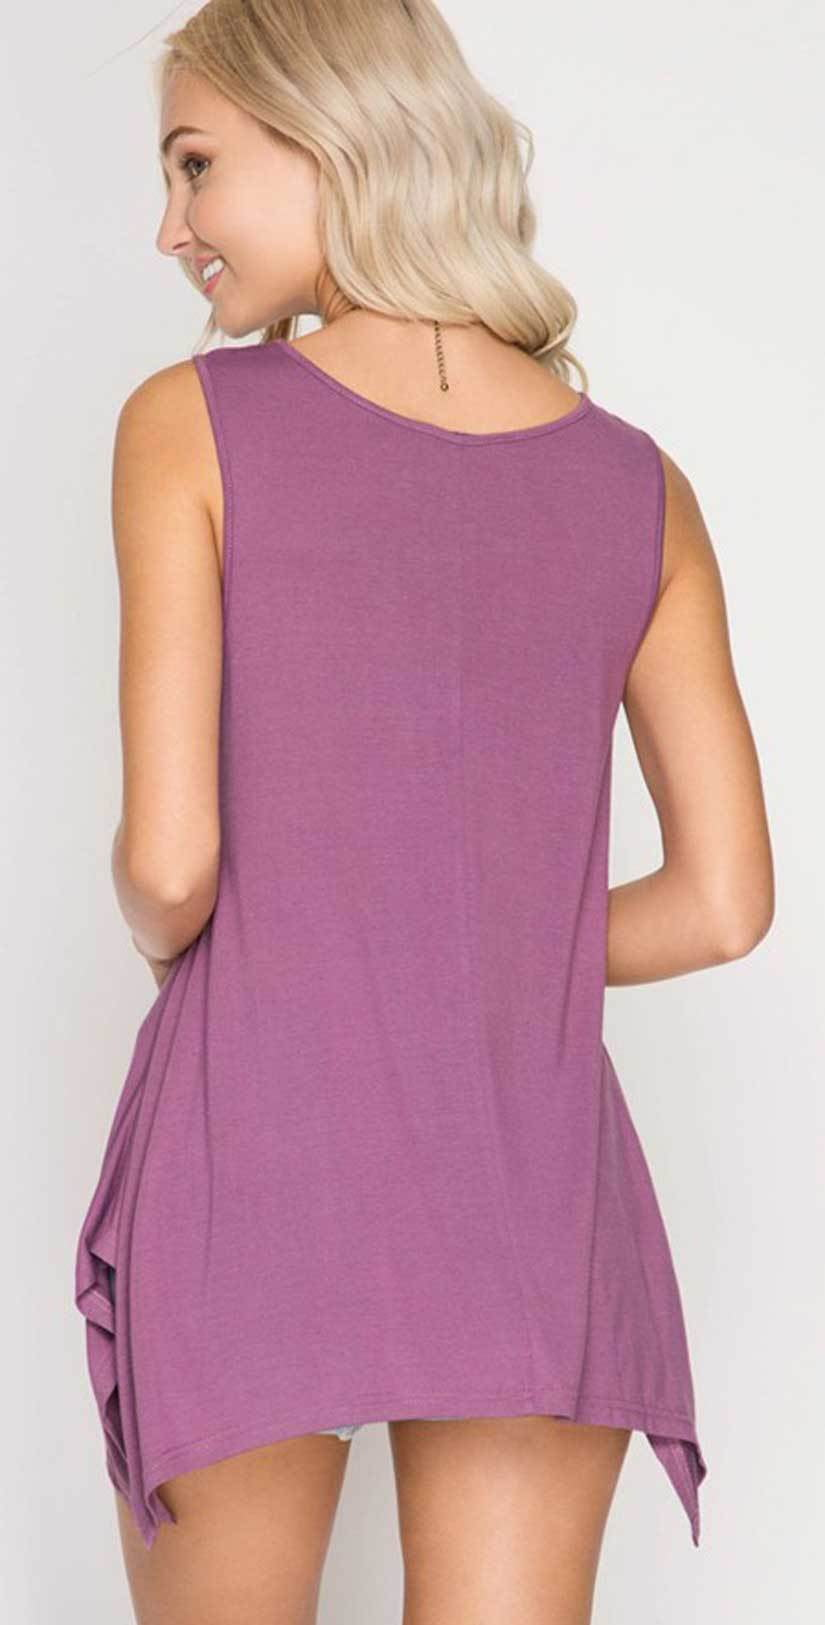 She + Sky Sleeveless Top with Braided Cutout Detail SL5262 back studio